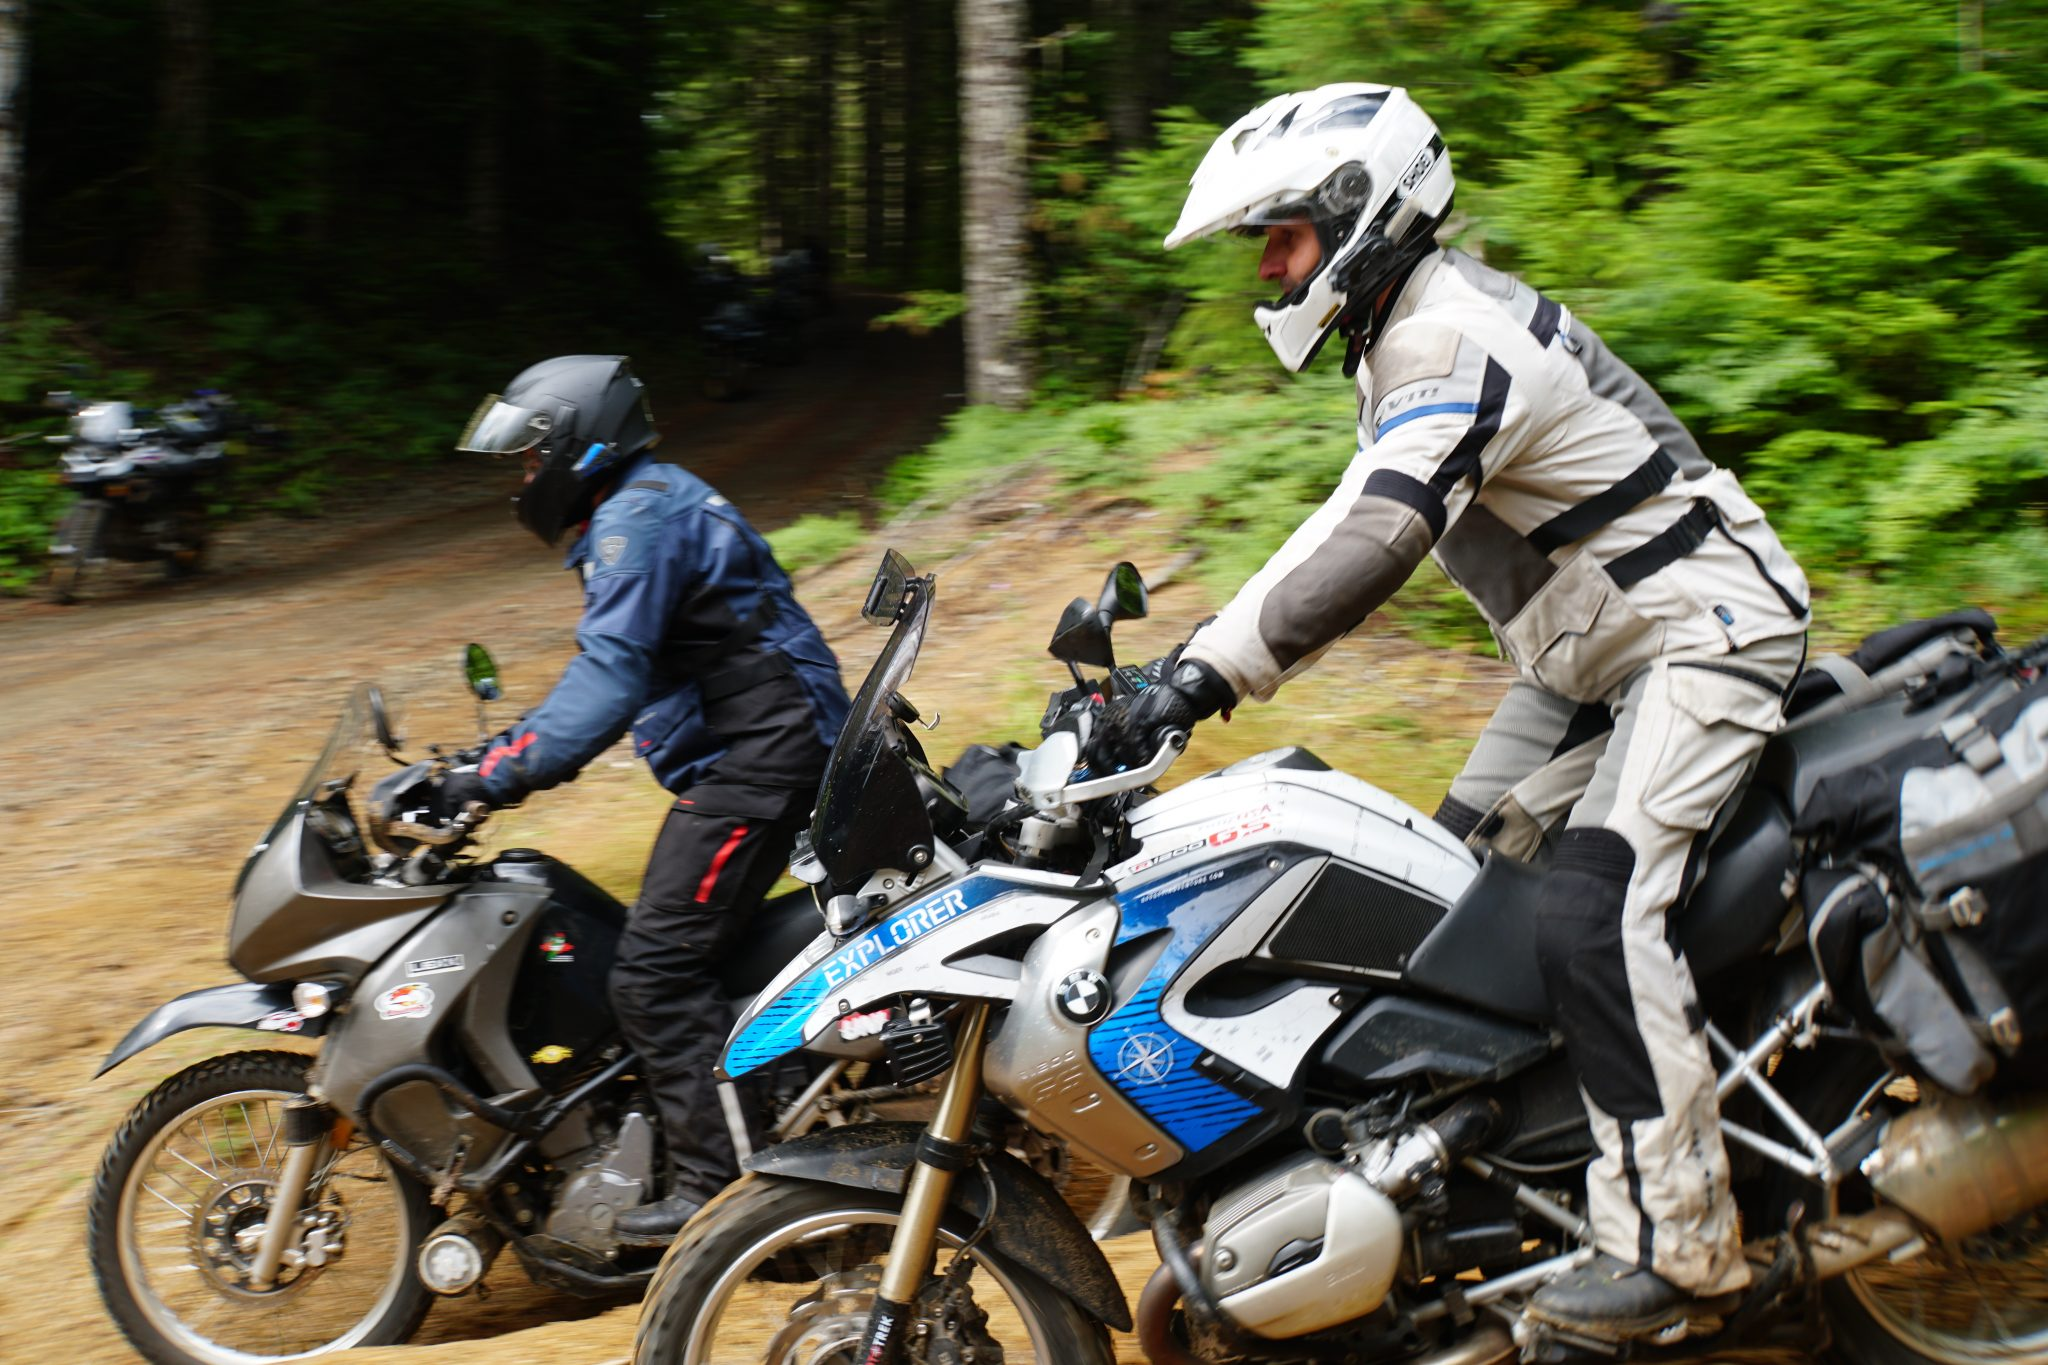 BMW R1200 GS oilhead and KLR 650 at Adventure Training Camp